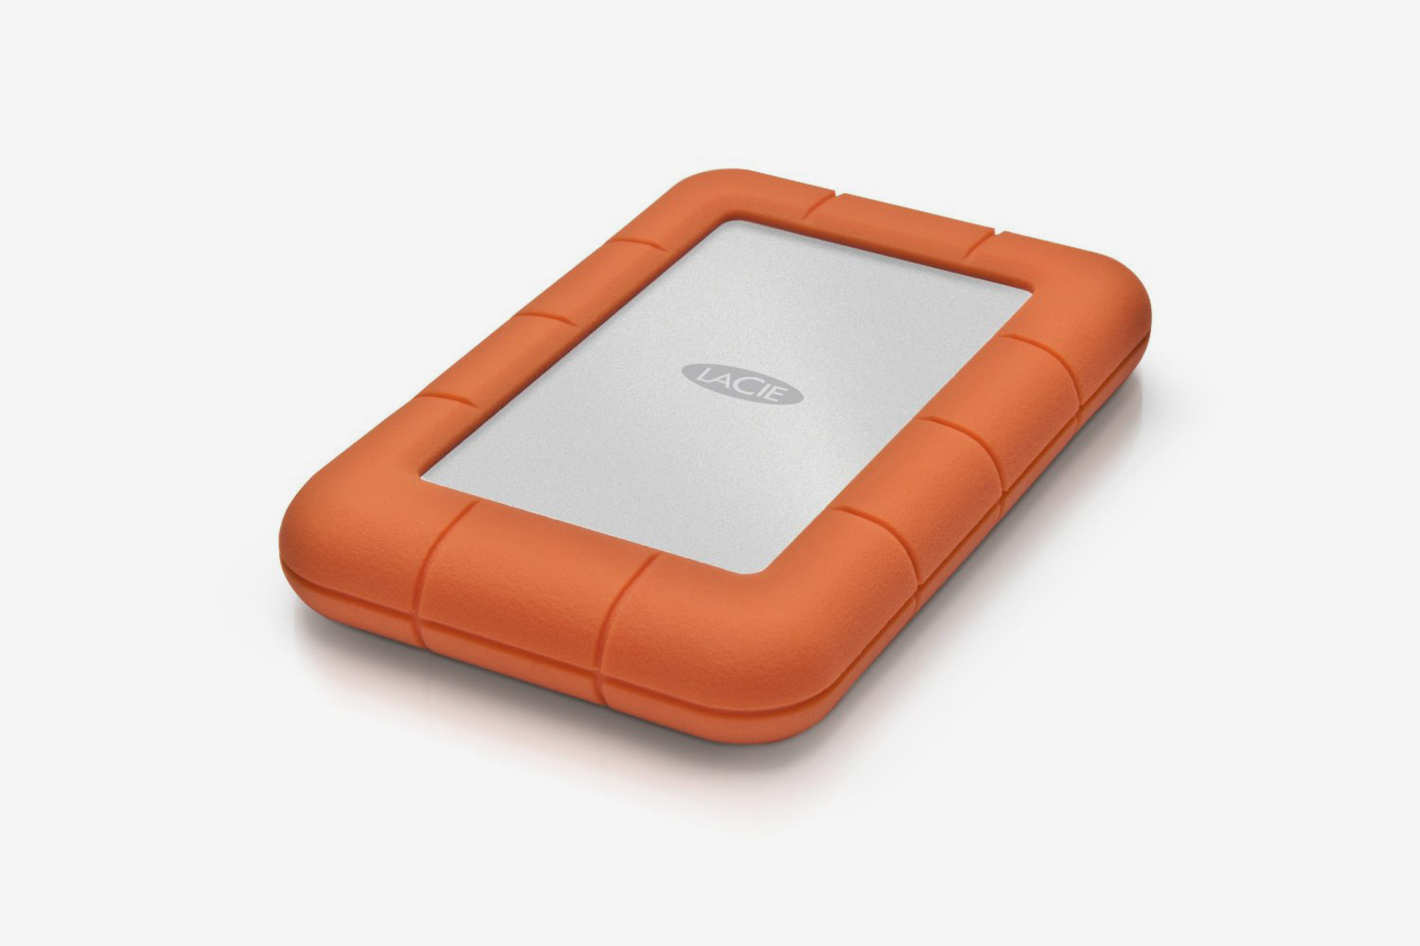 The 9 Best External Hard Drives Of 2018 Seagate Expansion Desktop 35 Inch 4tb Hdd Eksternal Usb 30 With Power Adaptor Lacie Rugged Mini 1tb Portable Drive At Amazon